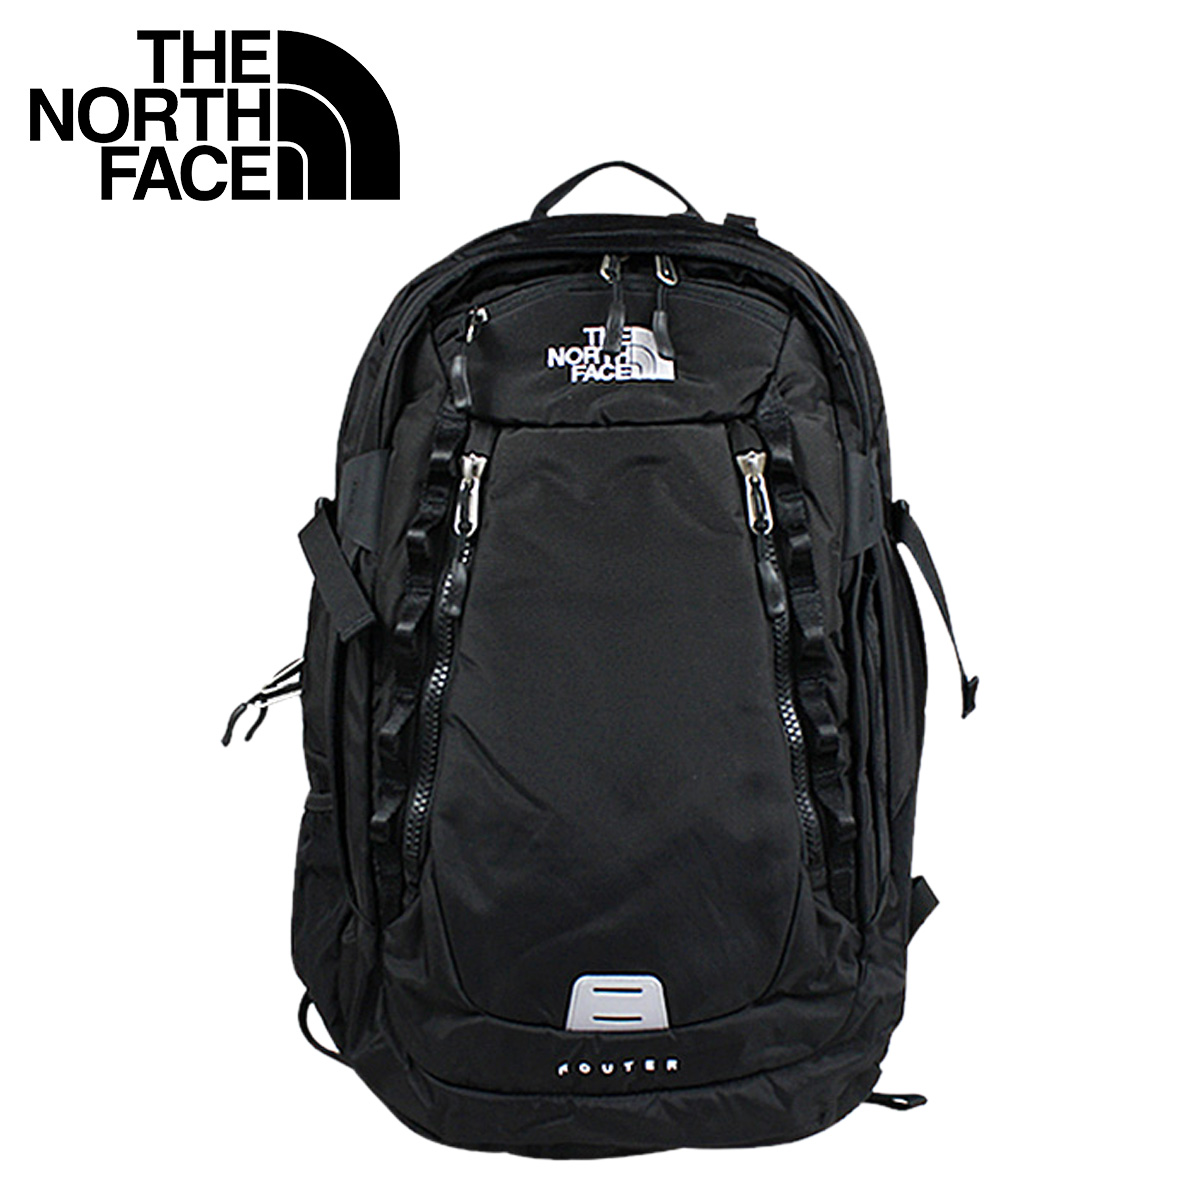 72107ad178414b ALLSPORTS: [SOLD OUT] the north face THE NORTH FACE Backpack ...